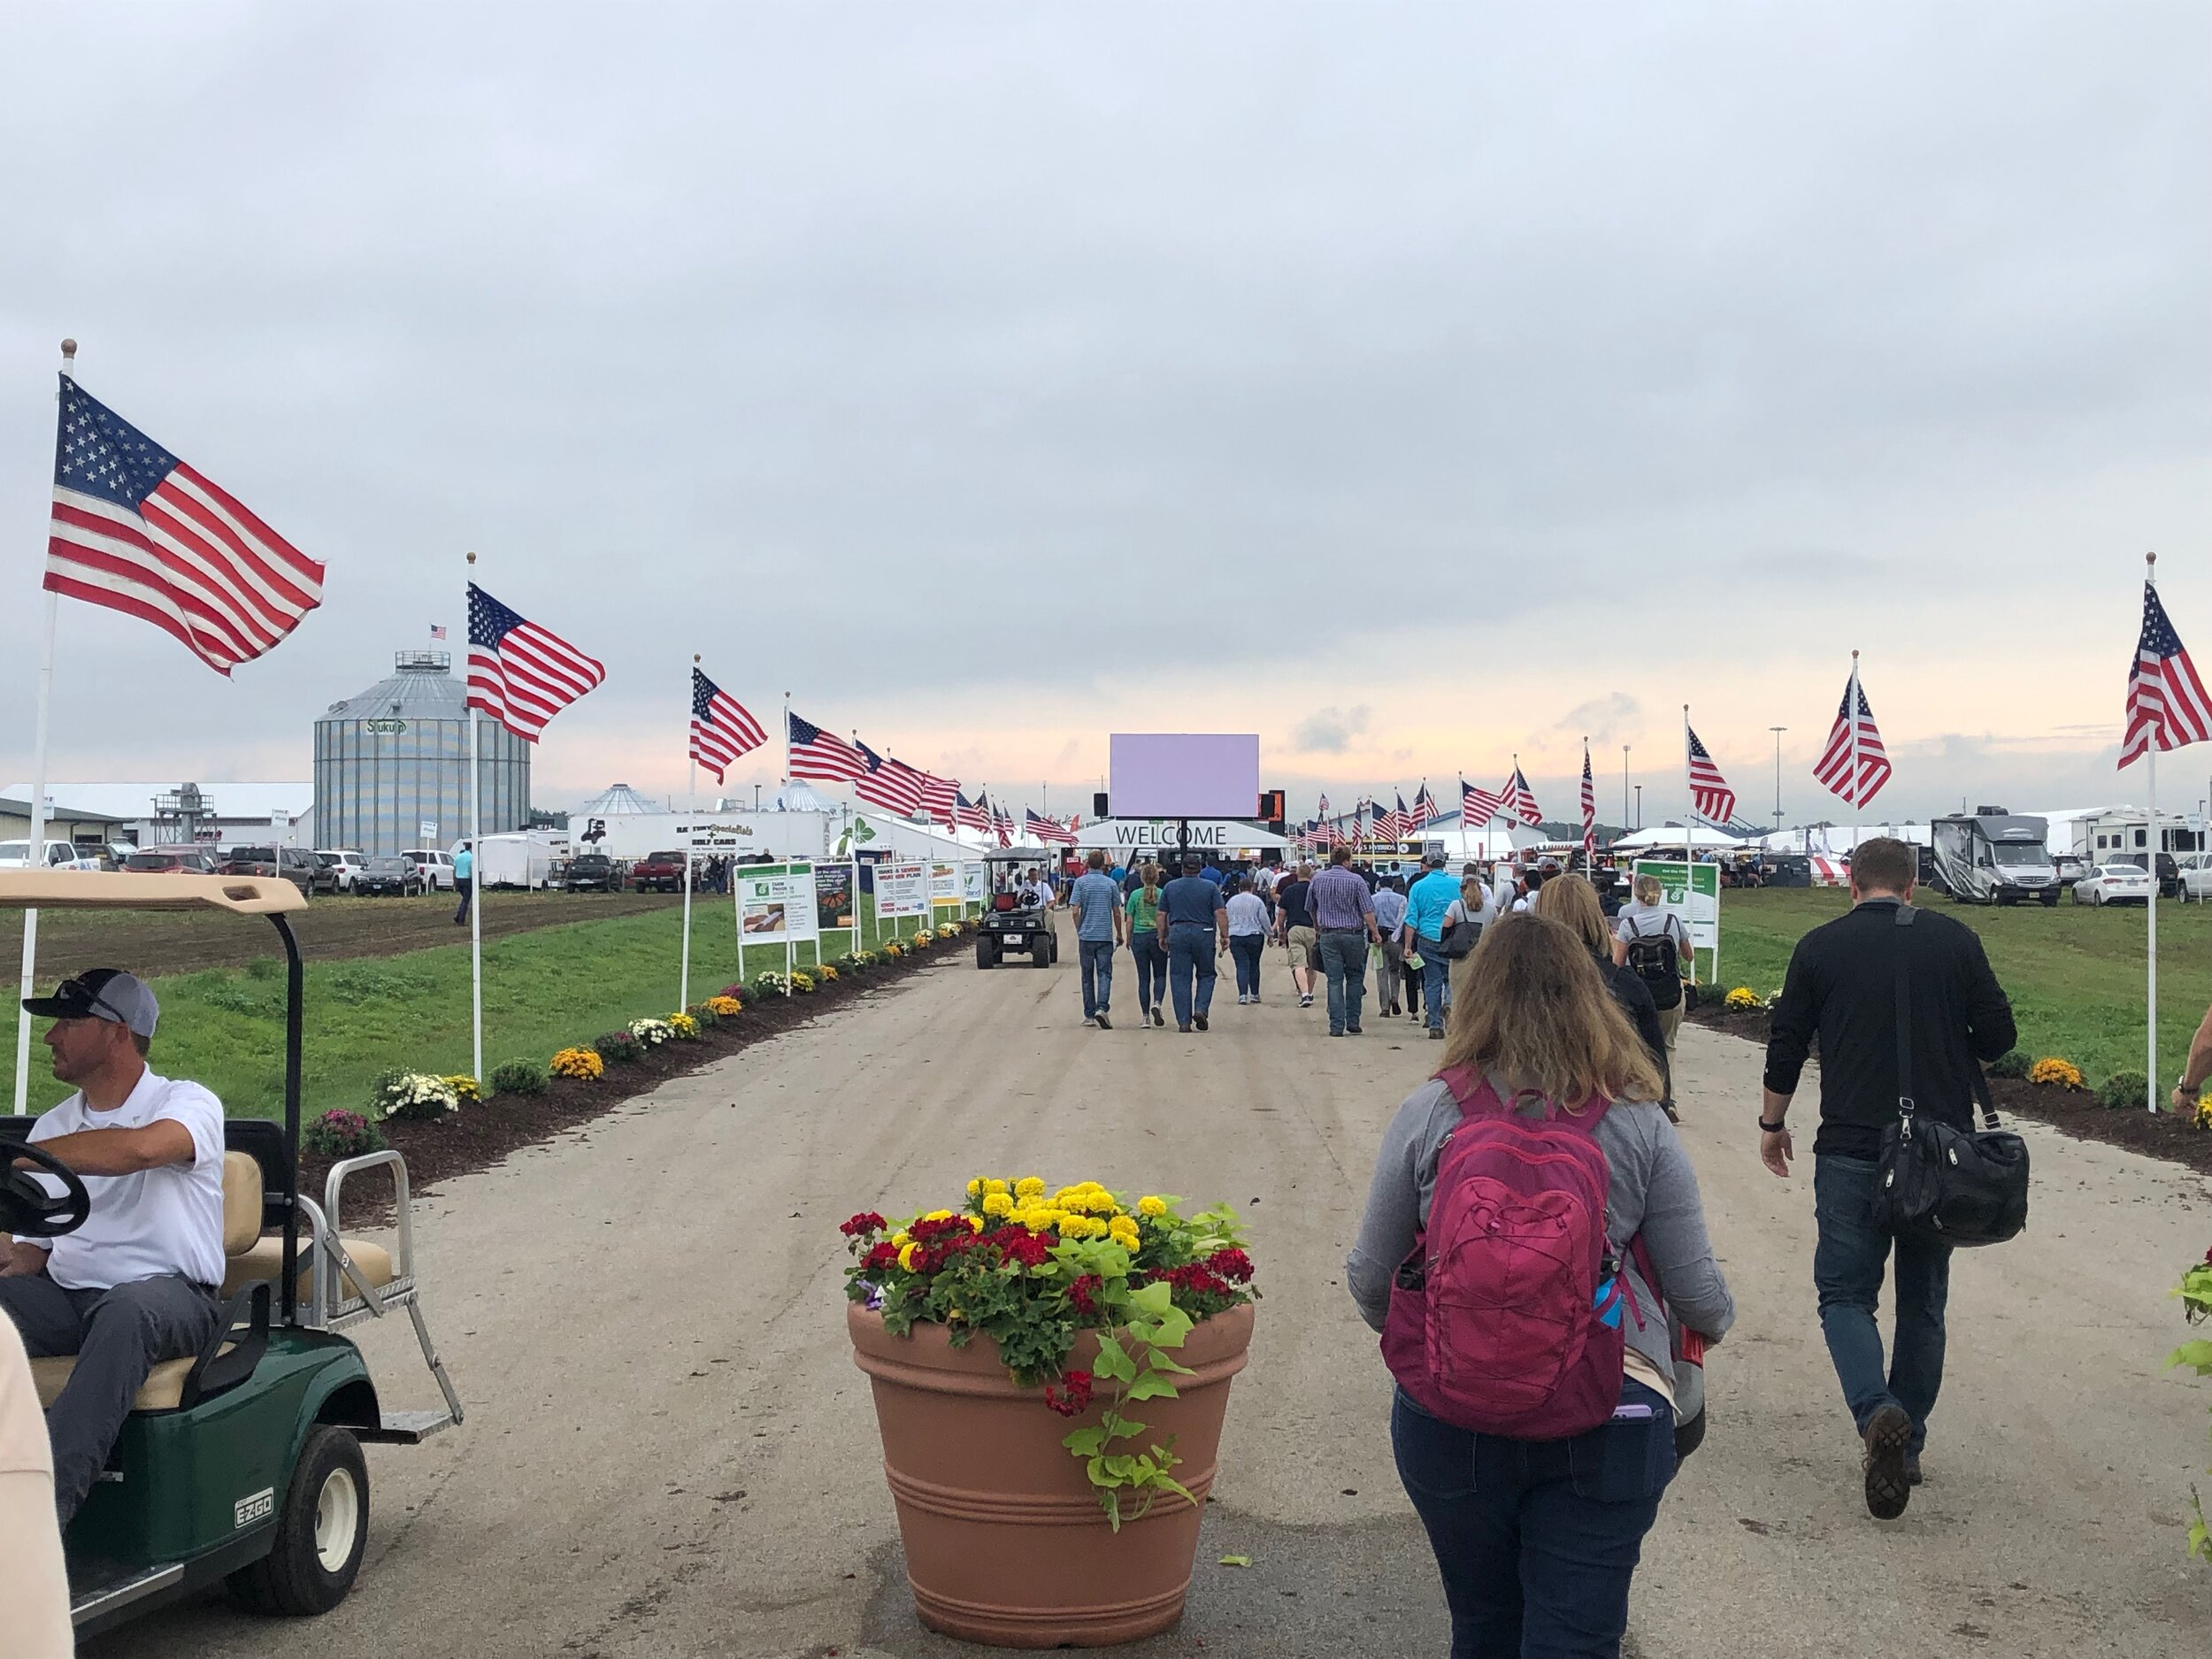 Jill Kostel, TWI's senior environmental engineer, approaches the main entrance gate to the huge Farm Progress Show in Decatur, Illinois. Photo by John Briel/TWI.